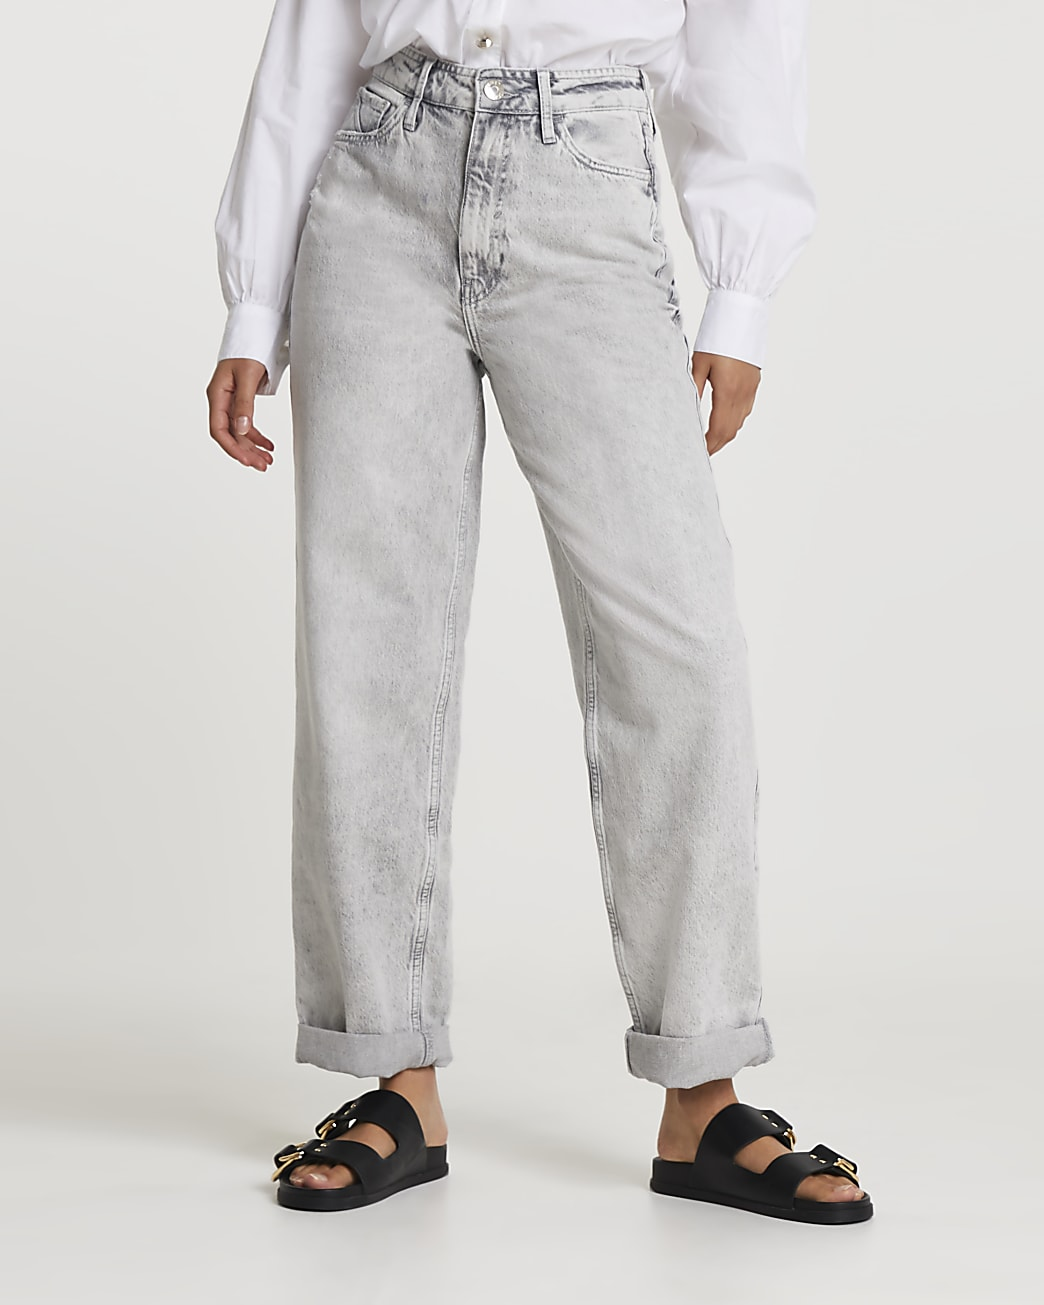 Grey oversized high waisted mom jeans